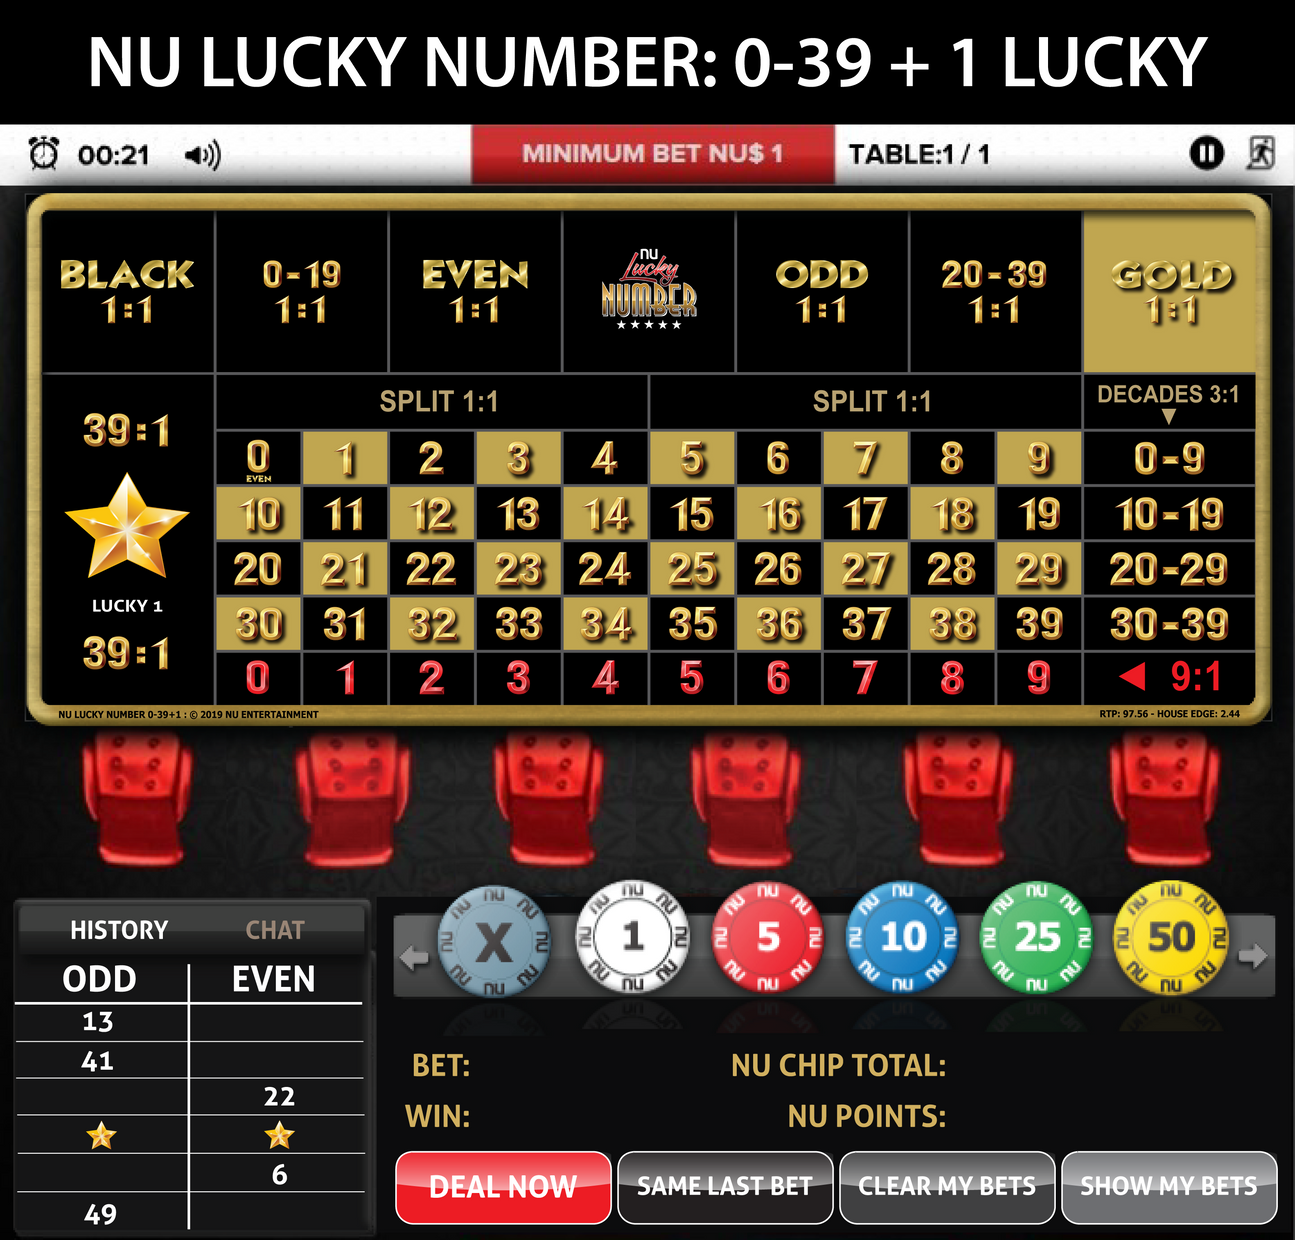 NU LUCKY NUMBER 0-39 (L)